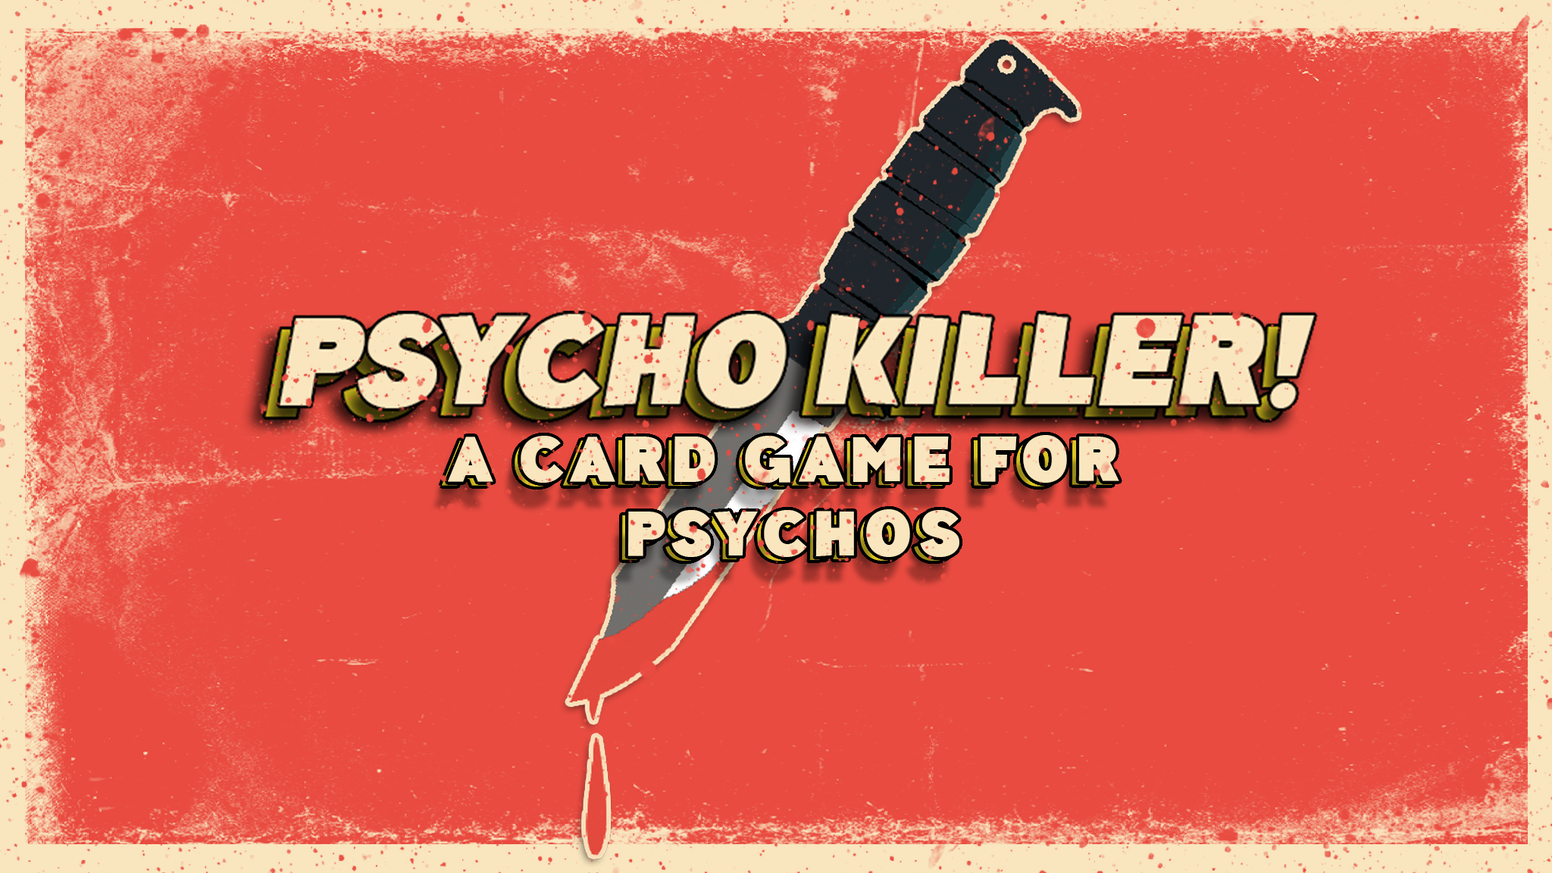 Qu'est-ce que c'est? A tabletop card game based on retro Slasher films!